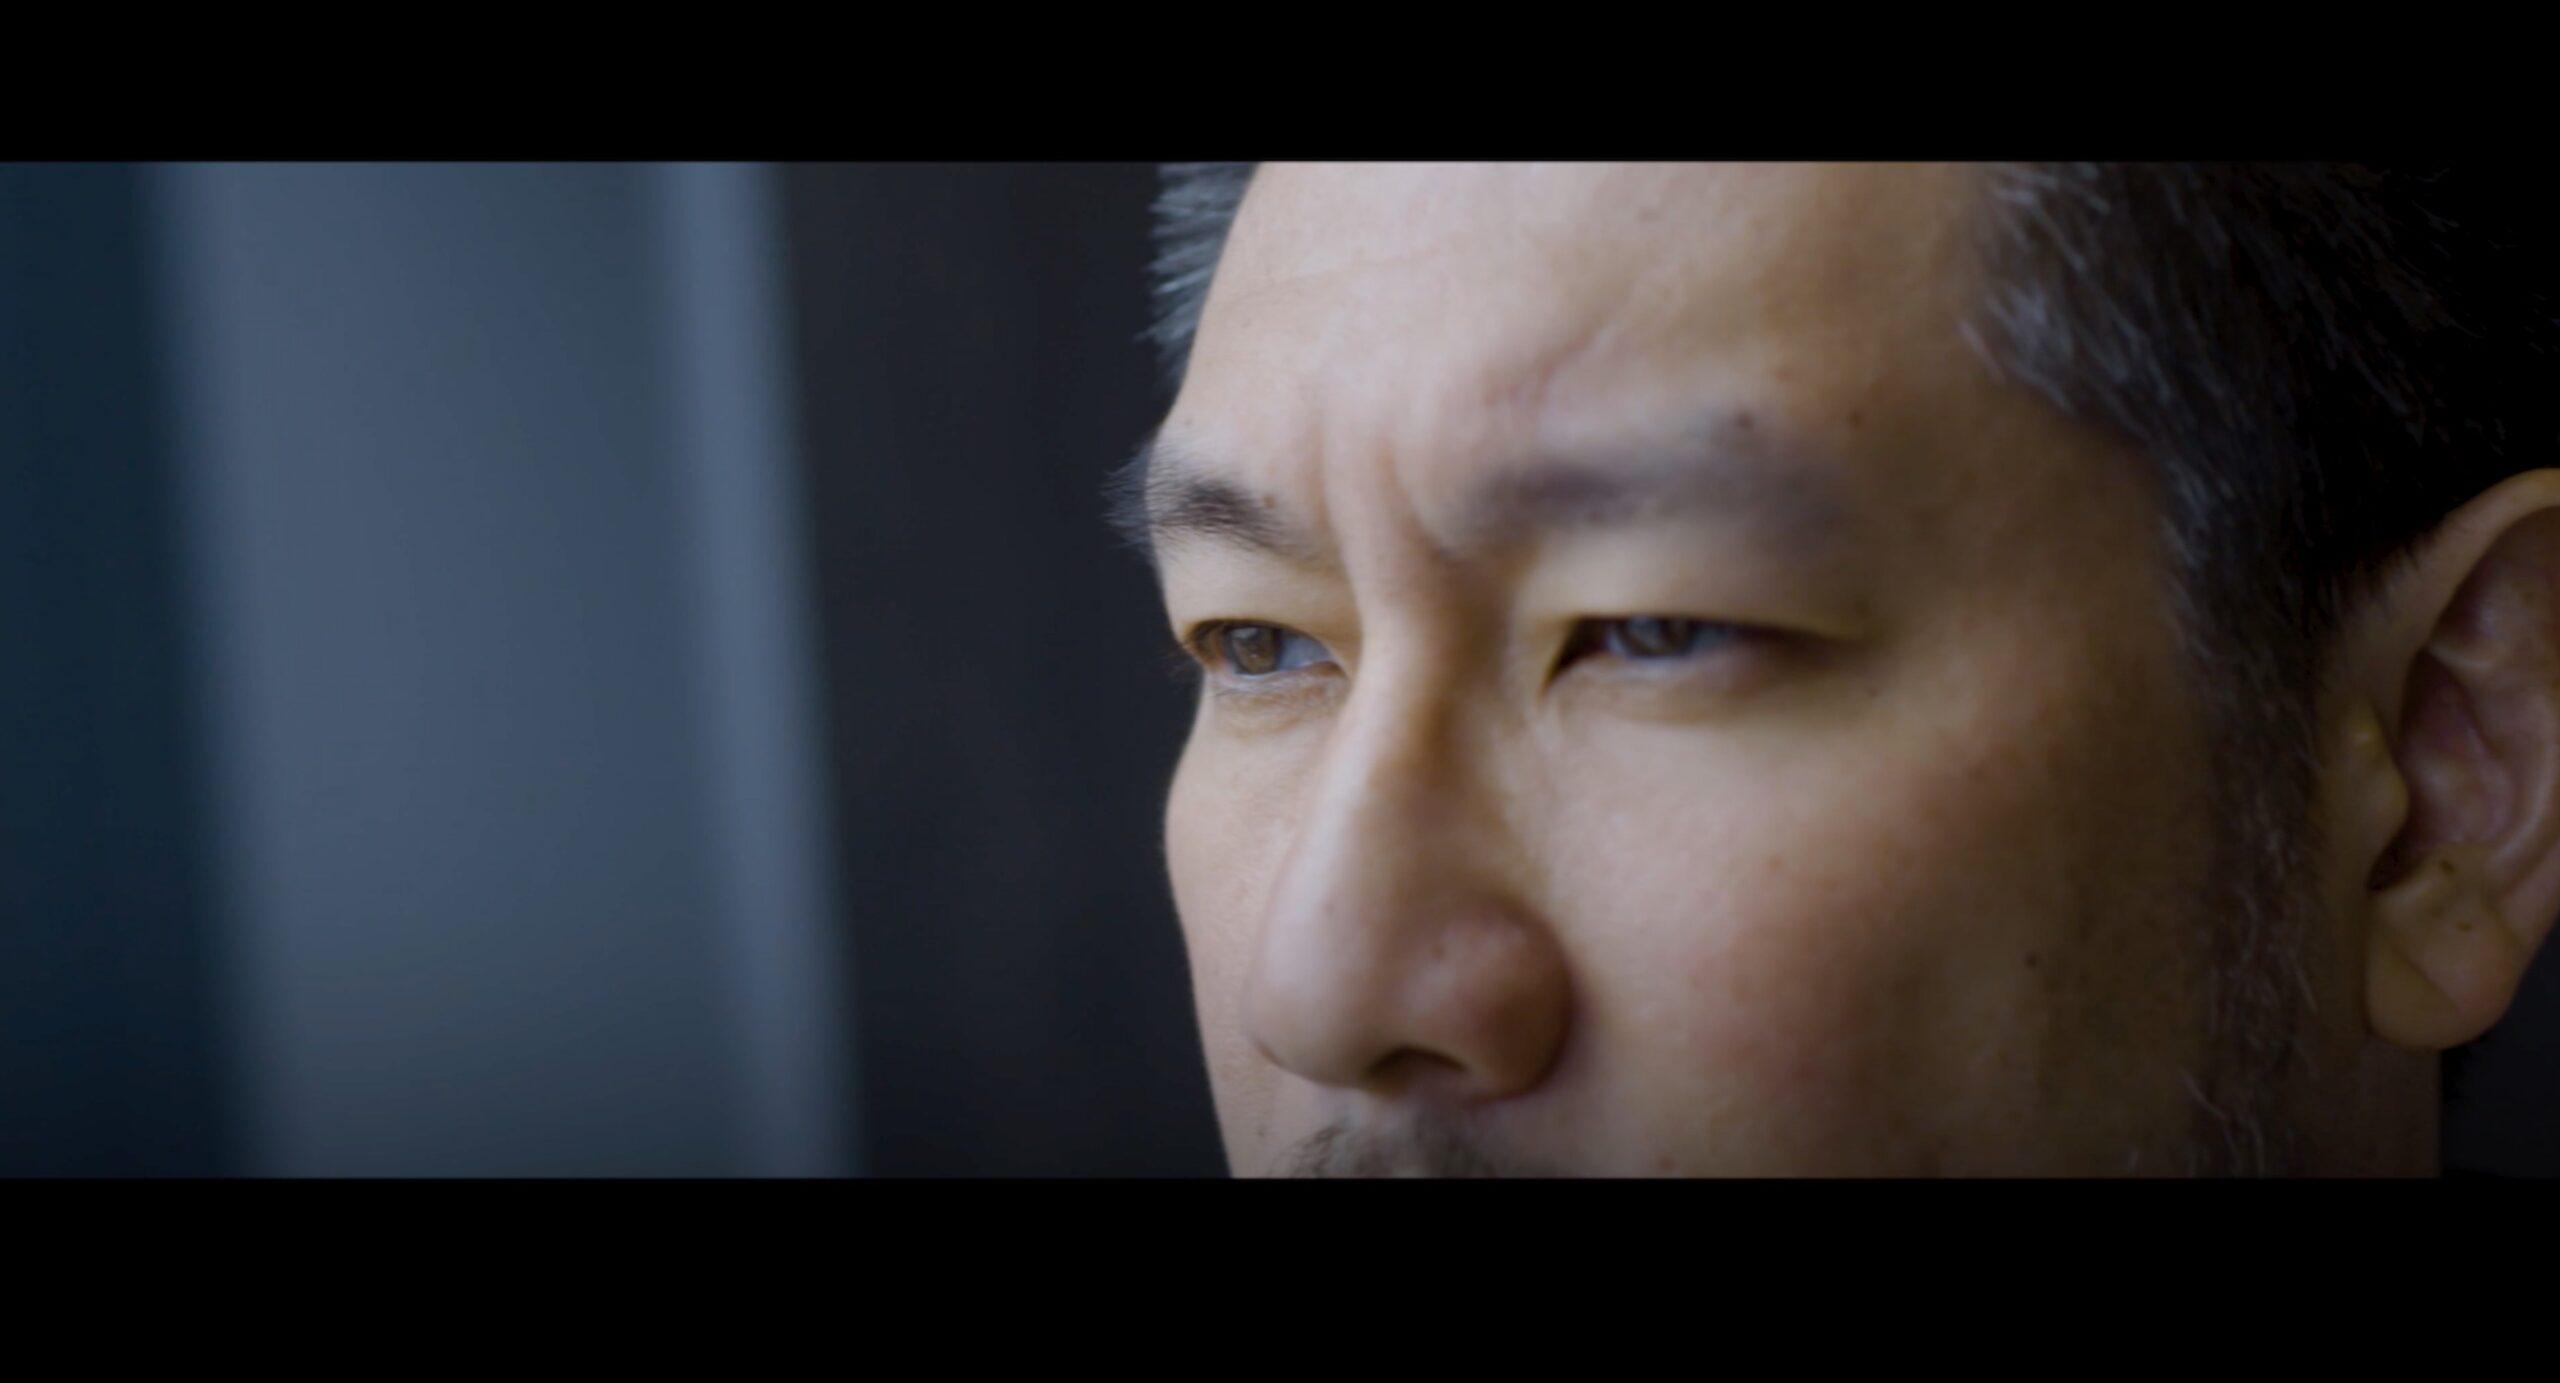 The Chatri Sityodtong Story | Suffering And Sacrifice (VIDEO)